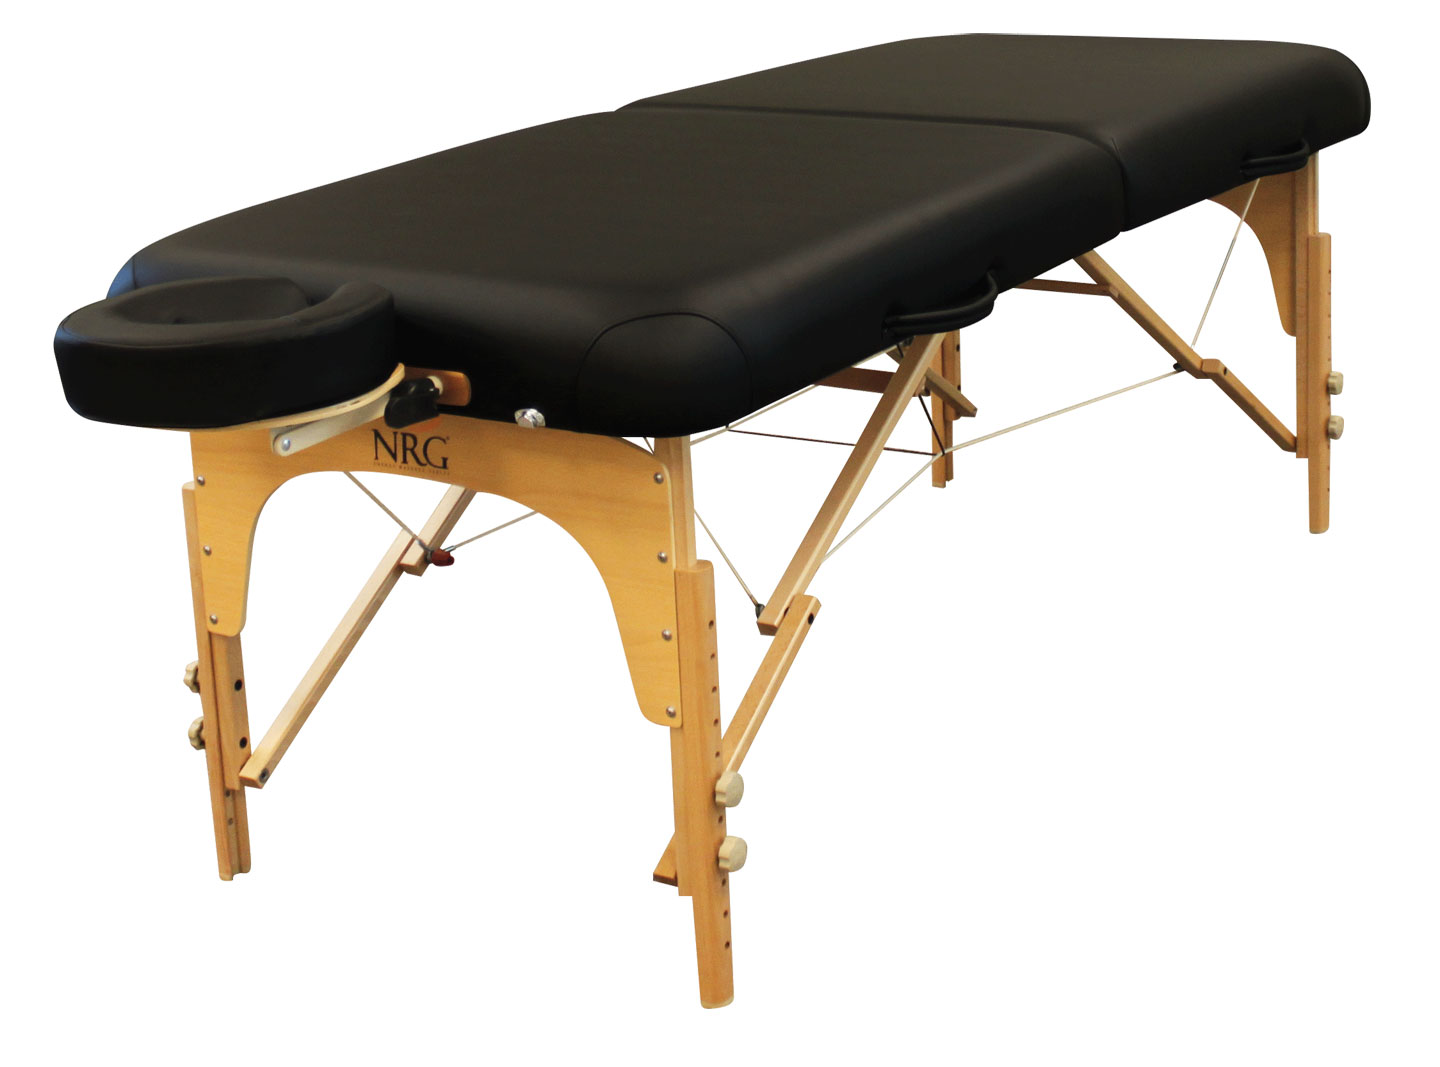 Nrg Vedalux Massage Table Package Portable Massage Table. Standing Computer Table. Snoopy Desk Accessories. Frosted Glass Dining Table. Cafe Tables For Sale. Help Desk Ticketing Software. Custom Desk Ideas. Knoll Table Desk. Open Desk Freelance